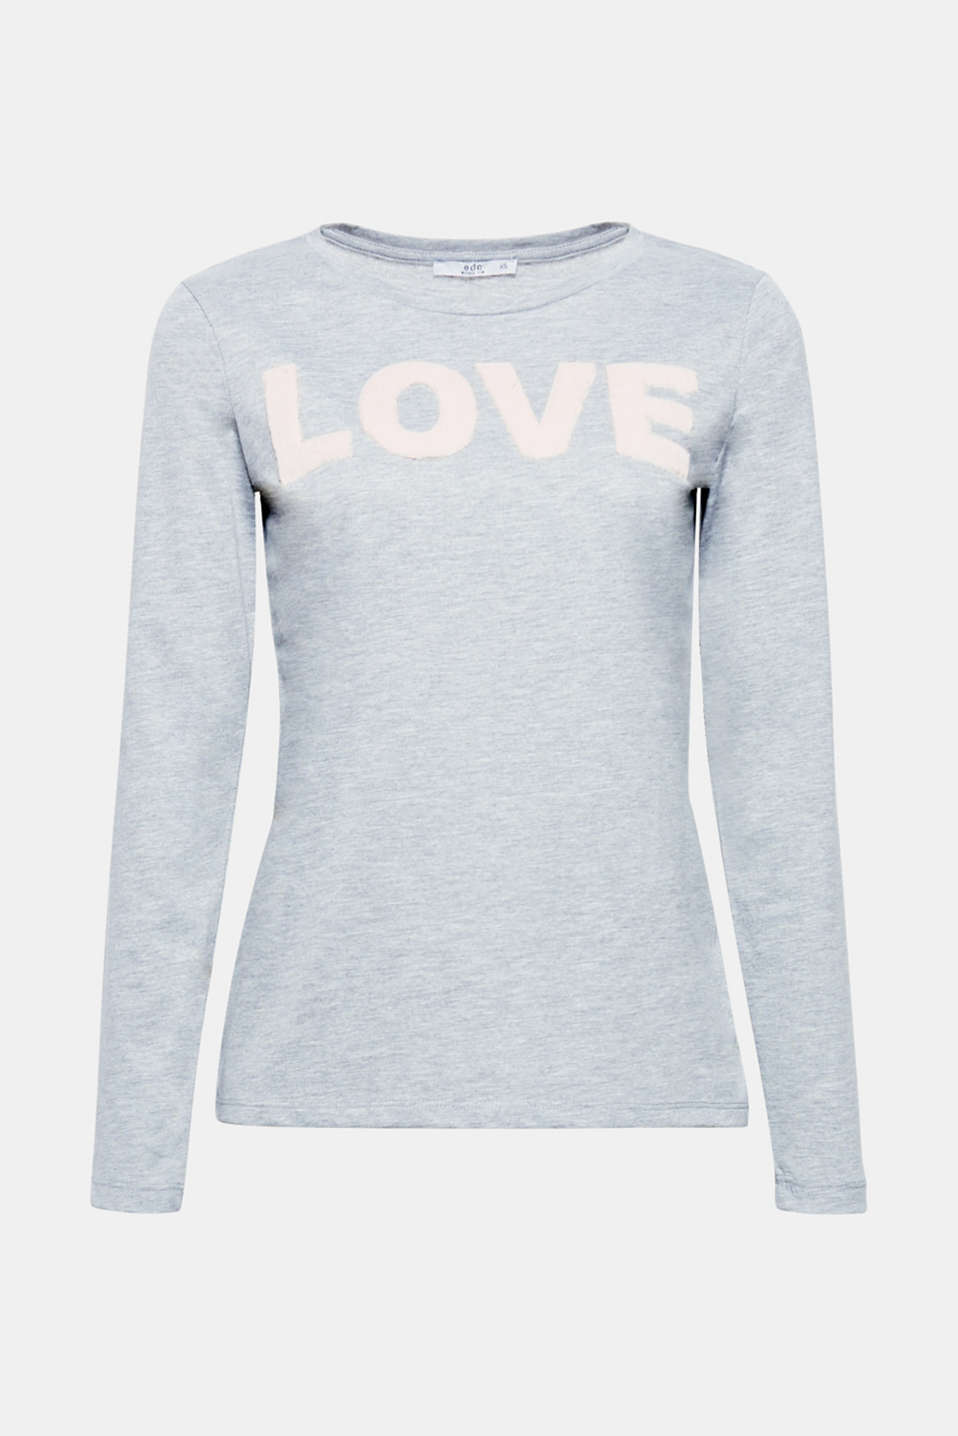 LOVE - With its expressive statement, this melange long sleeve top will be a loving basic with a special fluffy note.